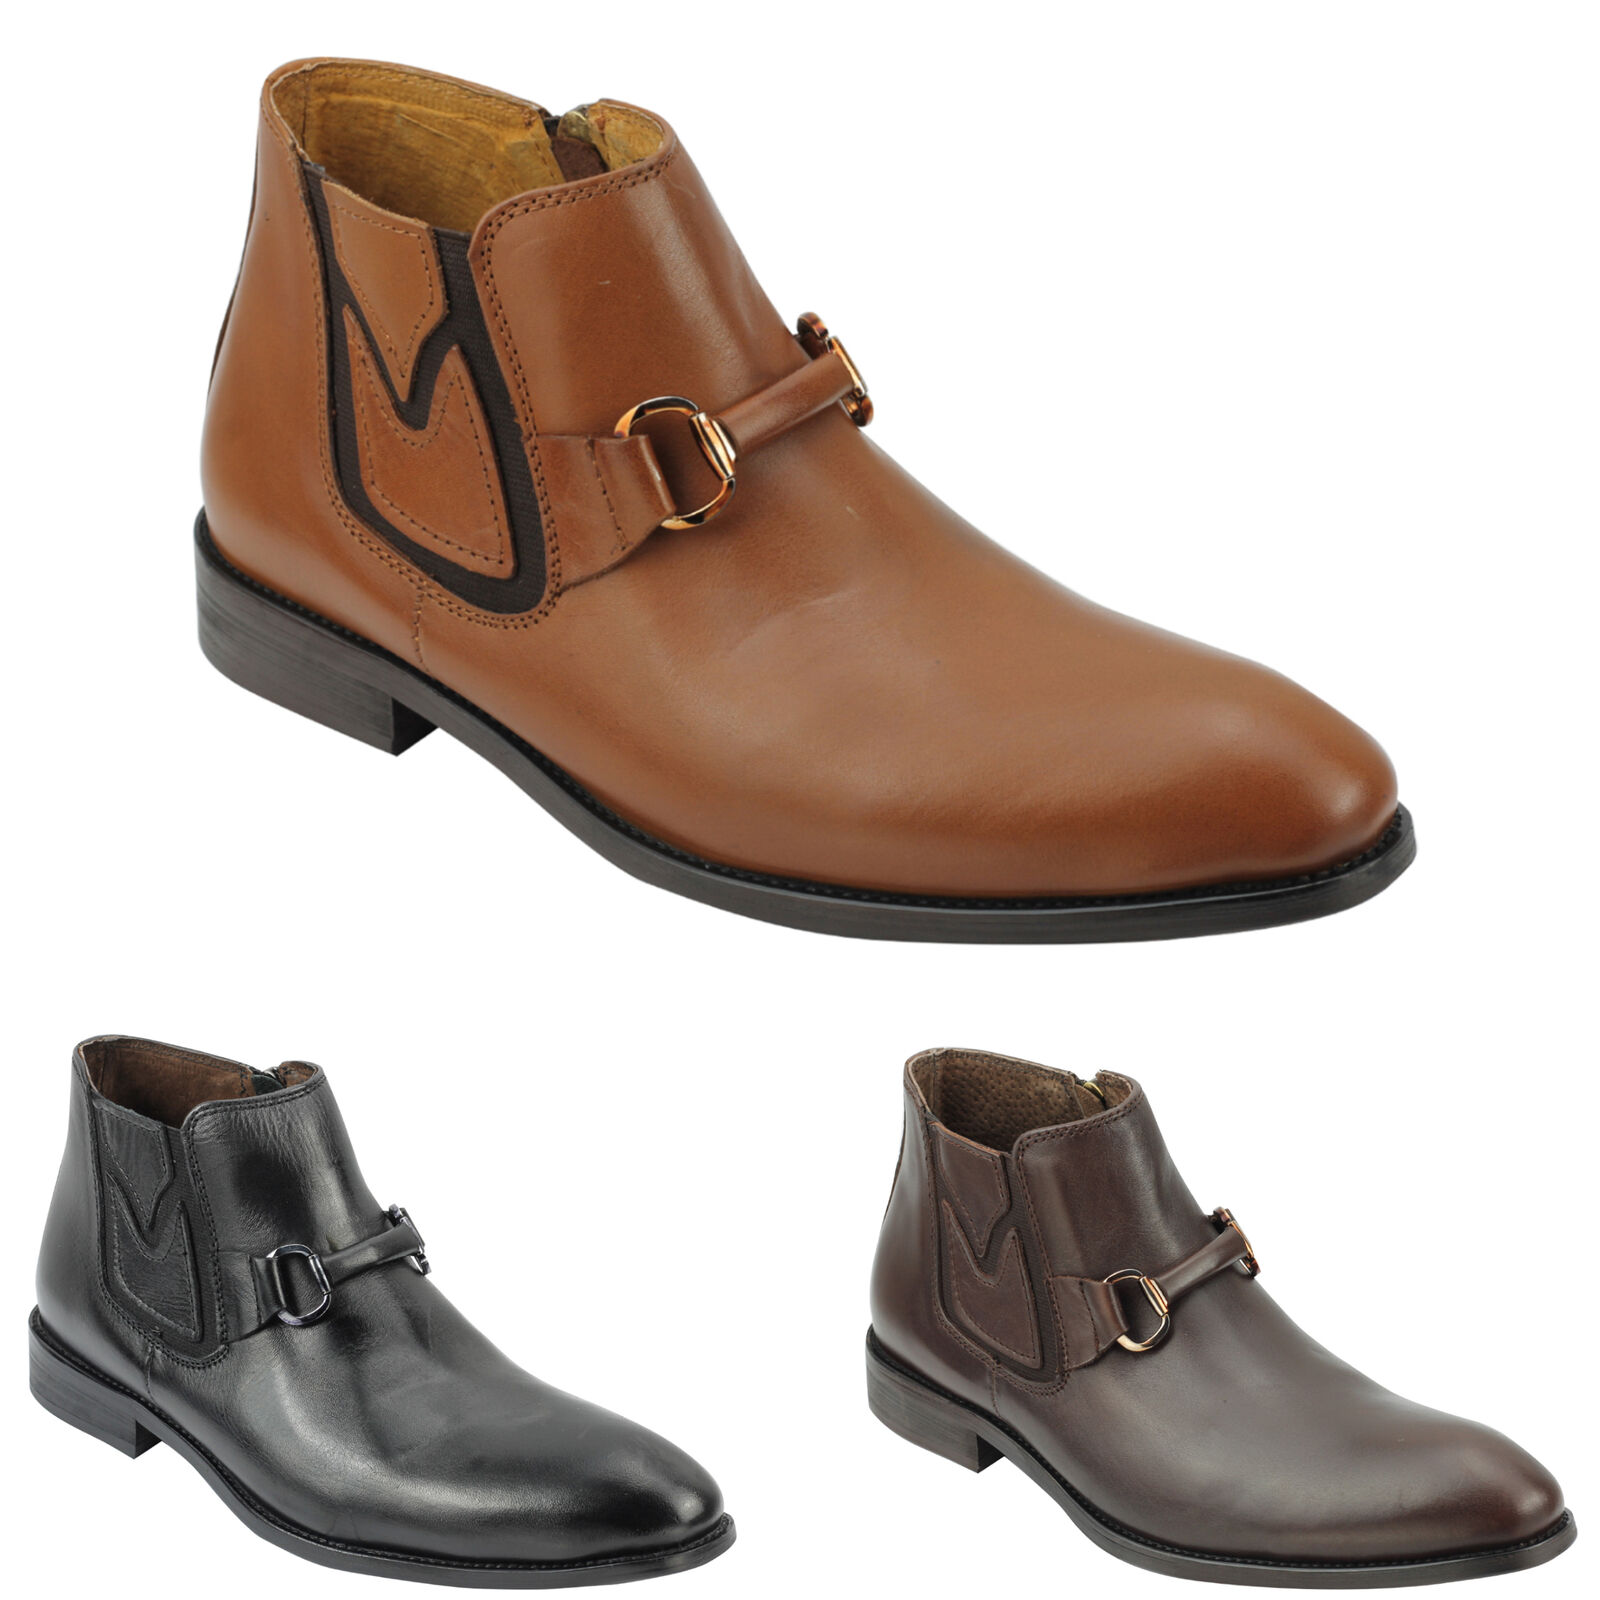 Mens Designer Slip On Smart Casual Real Leather Sleek Chelsea Zipped Ankle Boots